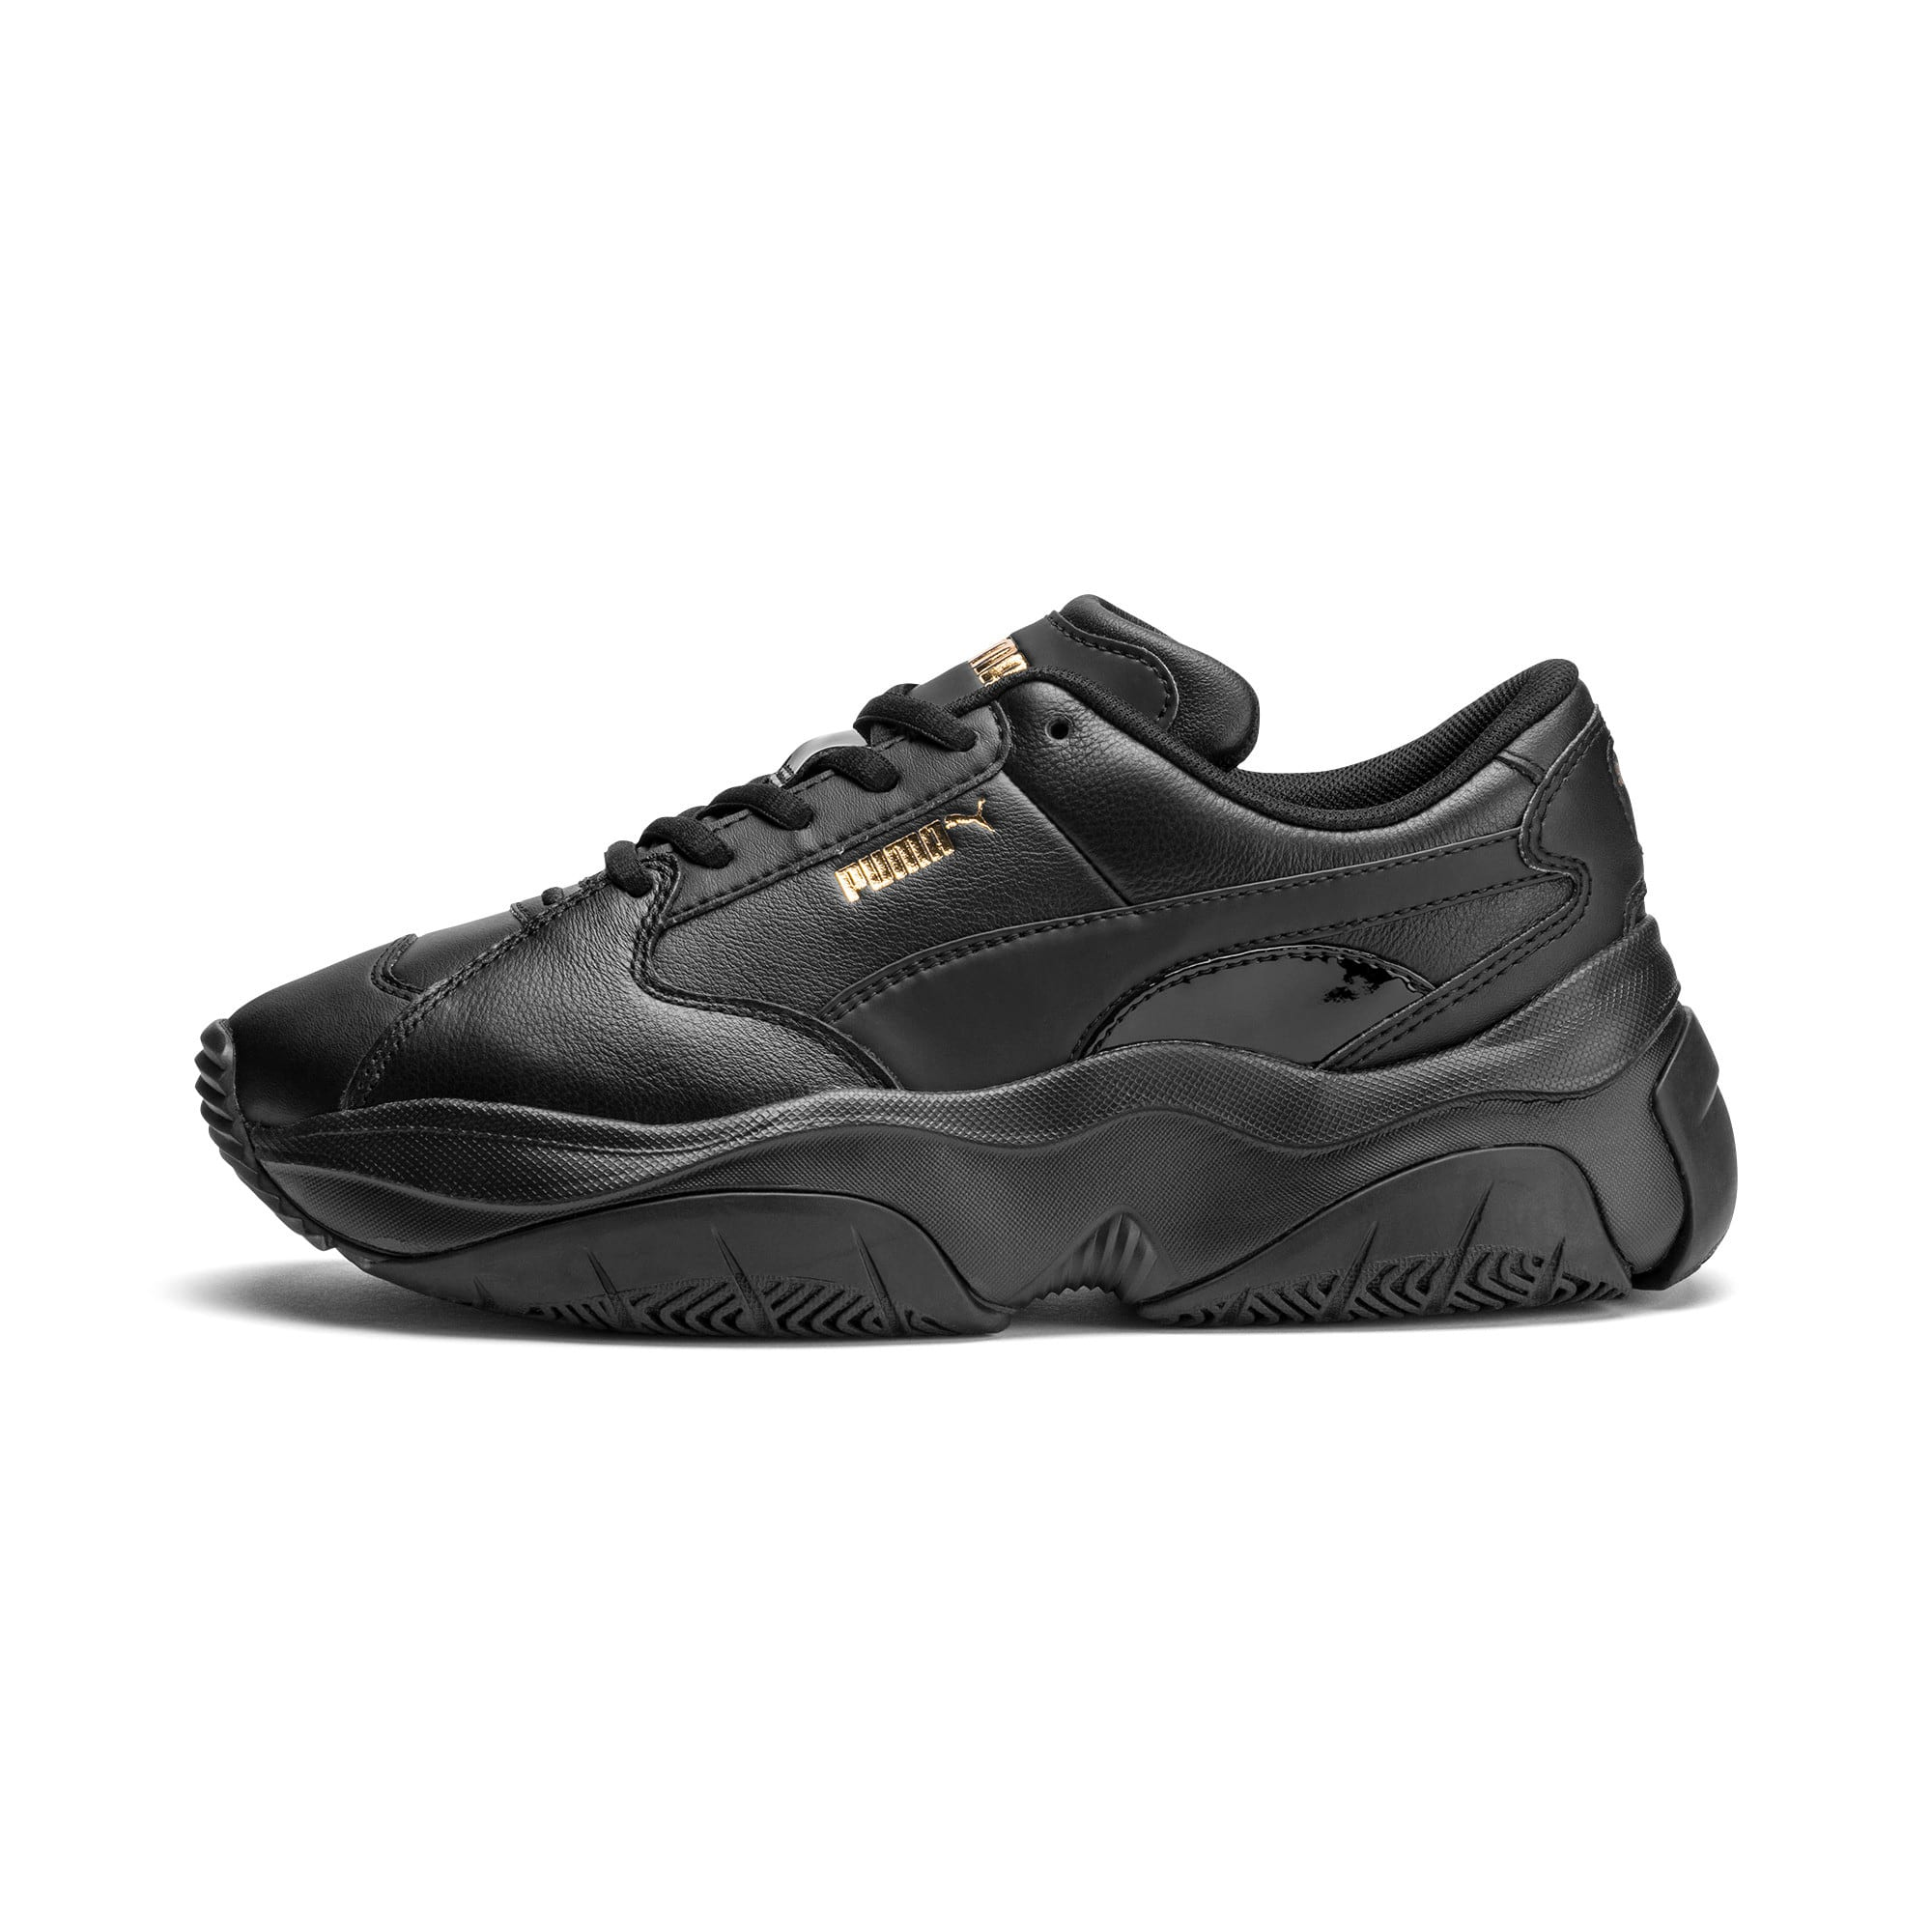 Thumbnail 1 of STORM.Y Leather Women's Trainers, Puma Black, medium